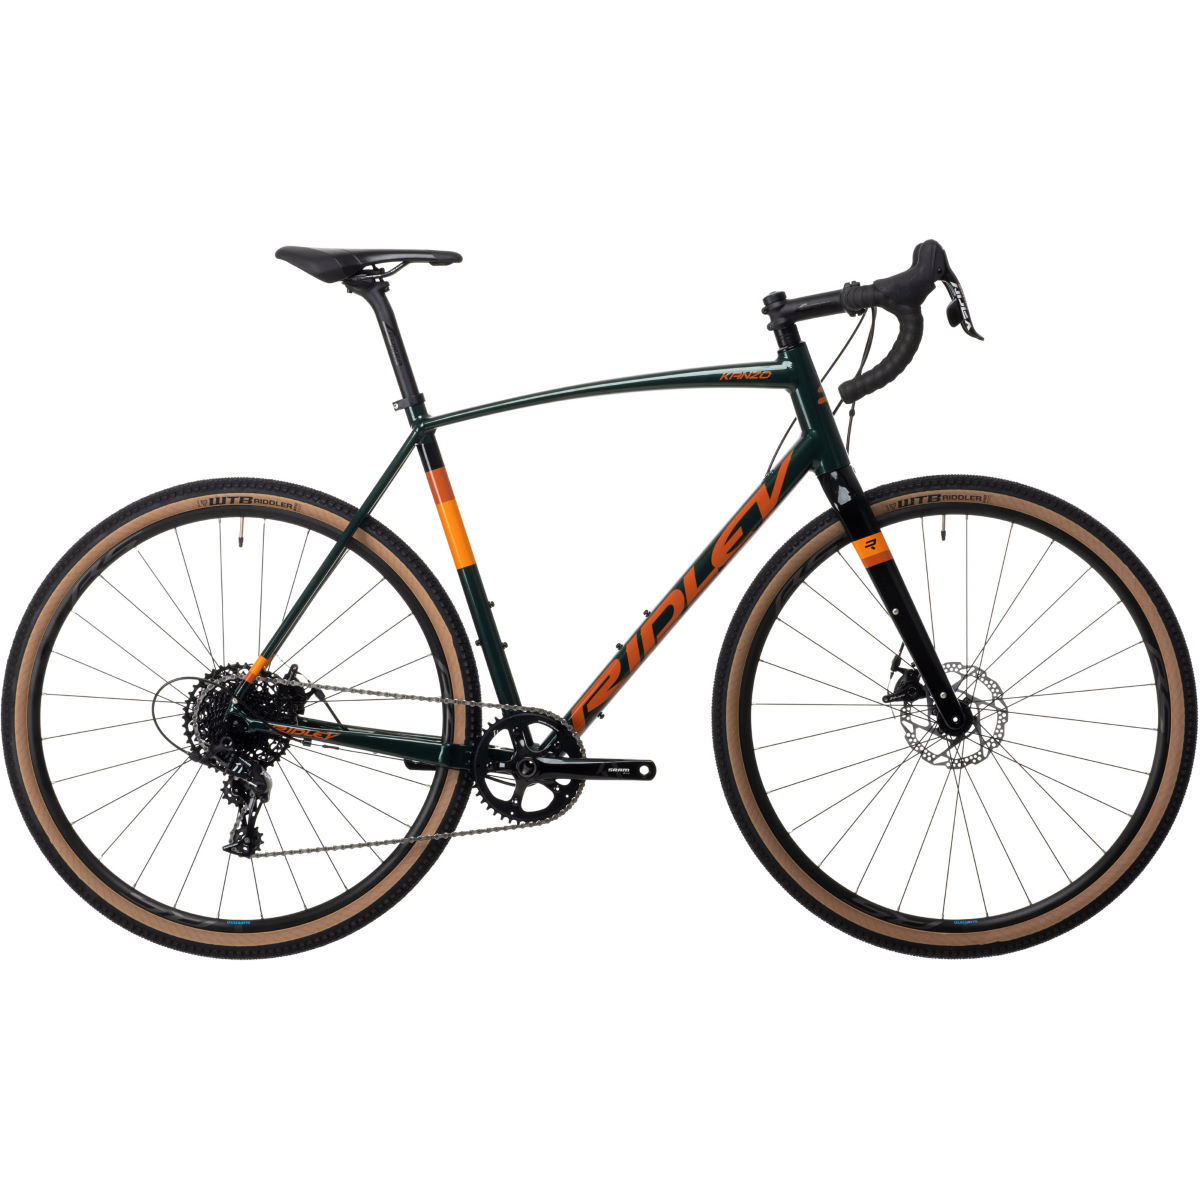 Ridley Ridley Kanzo A Adventure Bike (Apex 1 - 2021)   Adventure Bikes